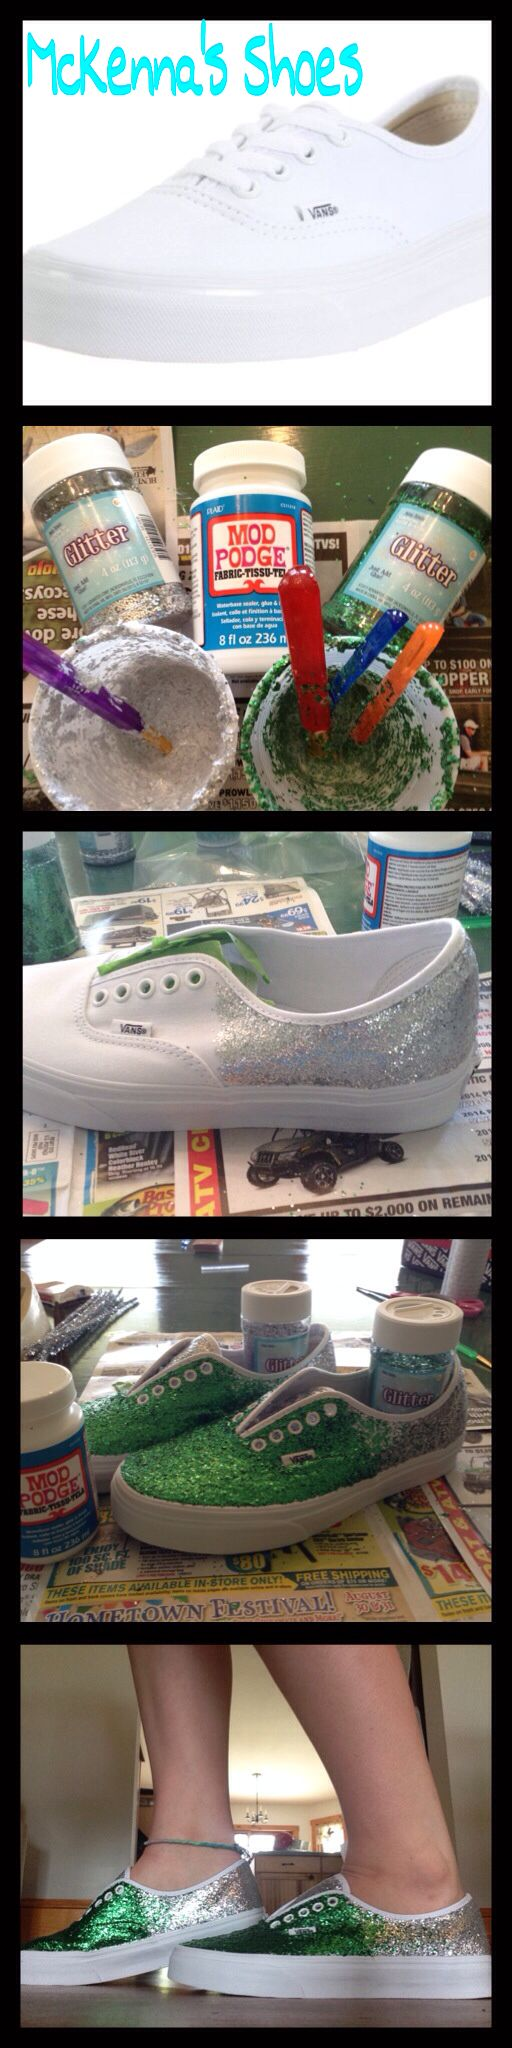 DIY School Spirit Vans: My school color is weird and I wanted shoes for games... Solution DIYing it up! Supplies: Brushes, shoes, 4 oz. fabric Mod Podge, and Glitter. Mix the glitter and Mod Podge together until really sparkley. When done, do 4 layers of sparkles but wait 15-20 minutes for each layer to dry. Then, let dry for 48 hours. After that, spray with tent waterproof spray and let dry for 48 hours. I did vans because I really like them, you can do Toms, Bobs, Keds, or knock offs!❤️